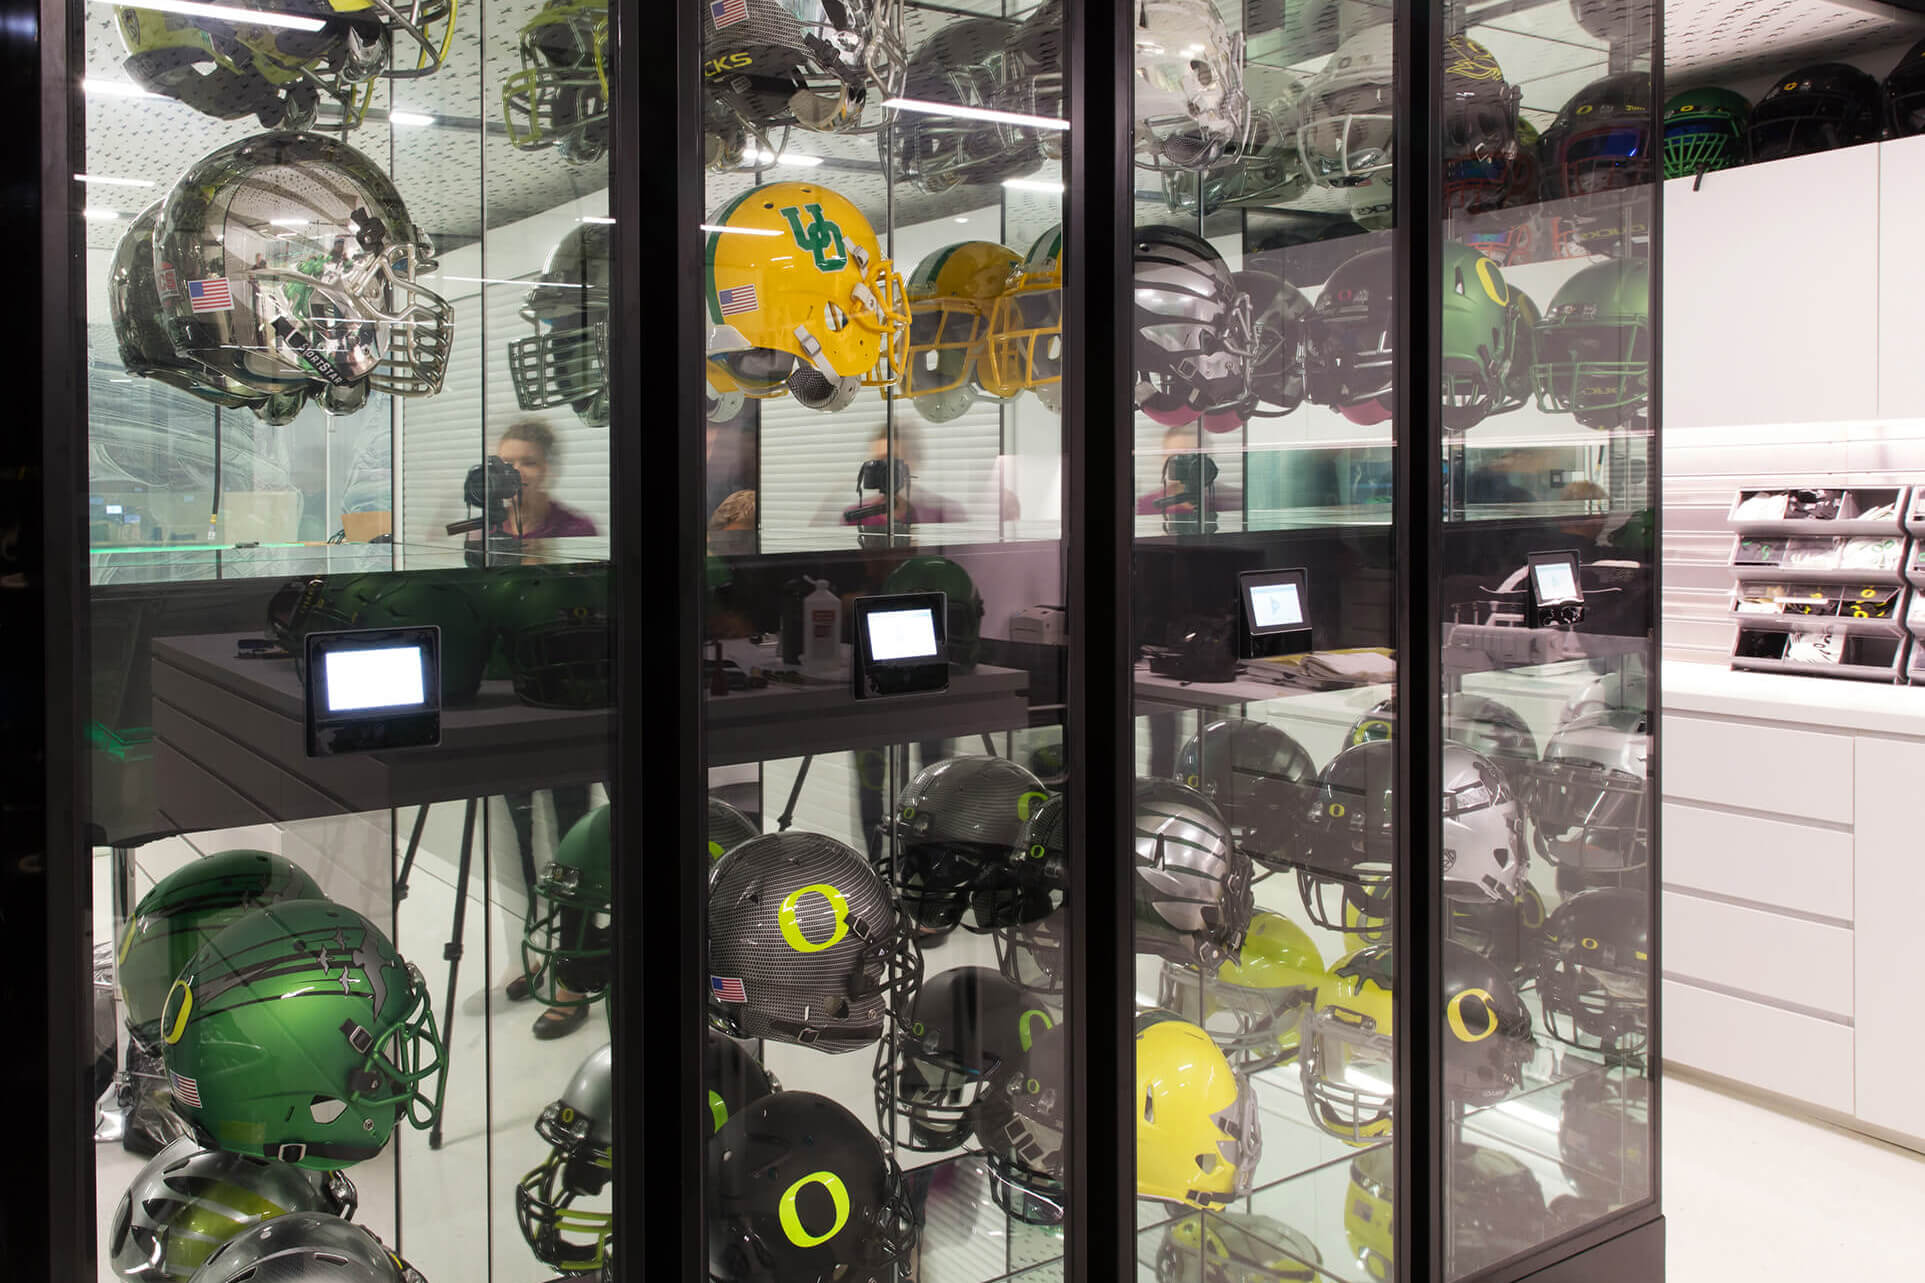 Oregon Ducks Helmet Display on Shelving